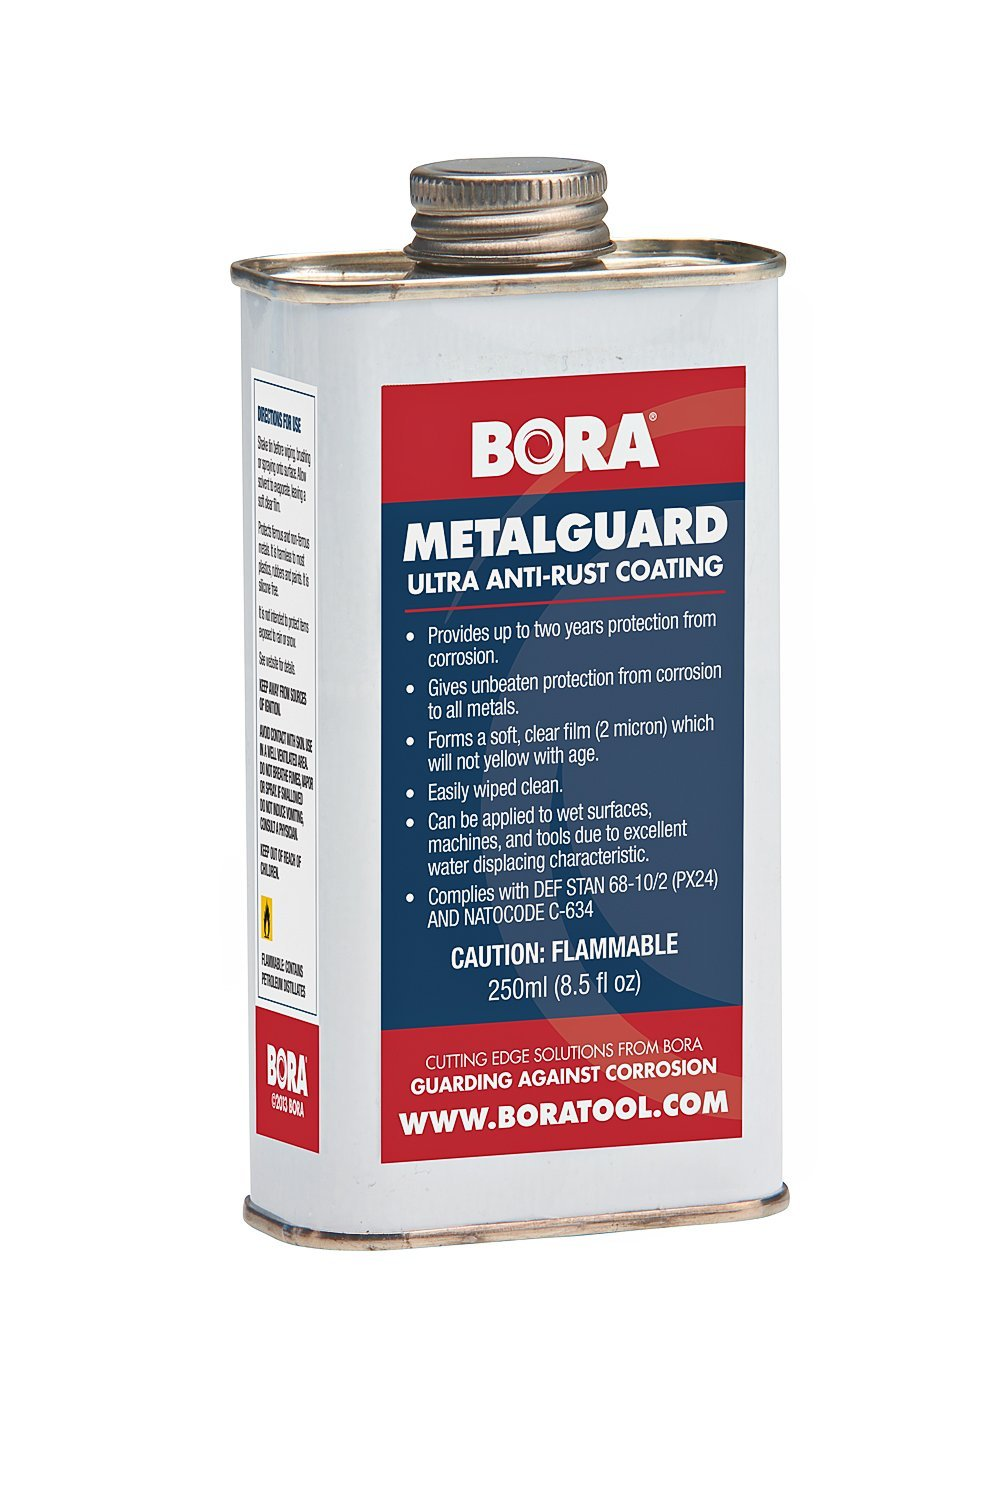 MetalGuard Ultra Anti Corrosion Treatment-Bora STN-MGU250 250ml can. Protects Your Tools and Machines from Rust and Corrosion for up to Two Years.